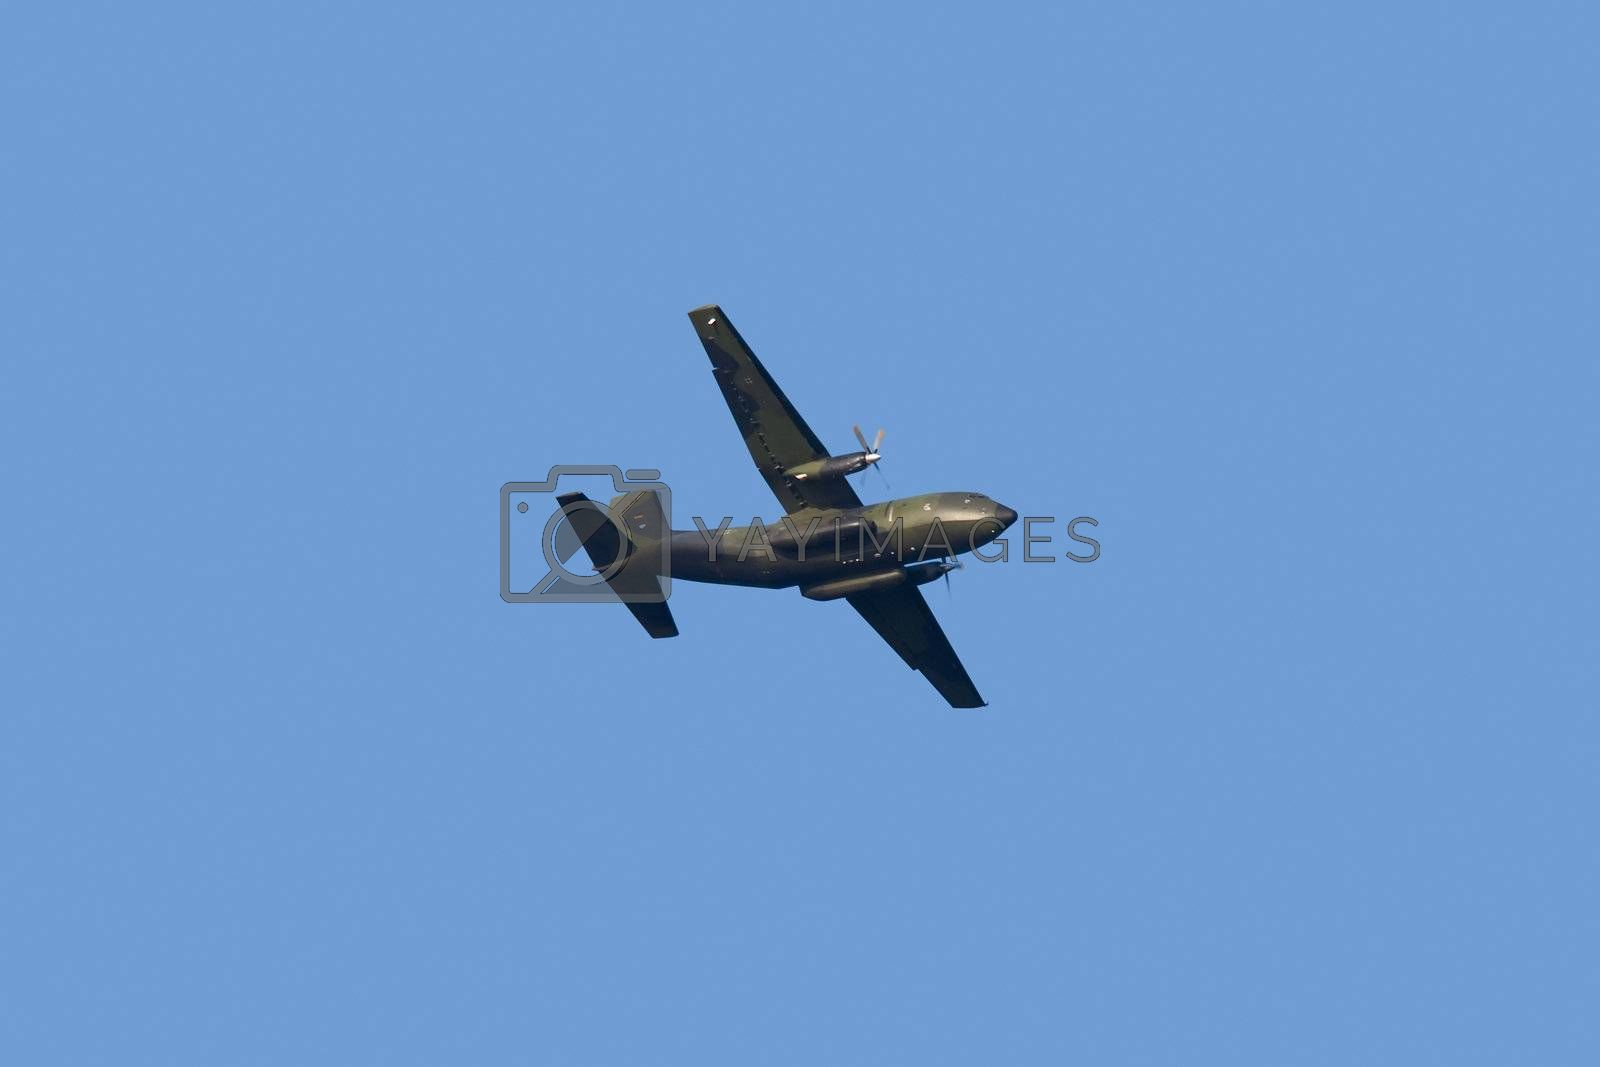 Military propeller aircraft flying in a clear skies